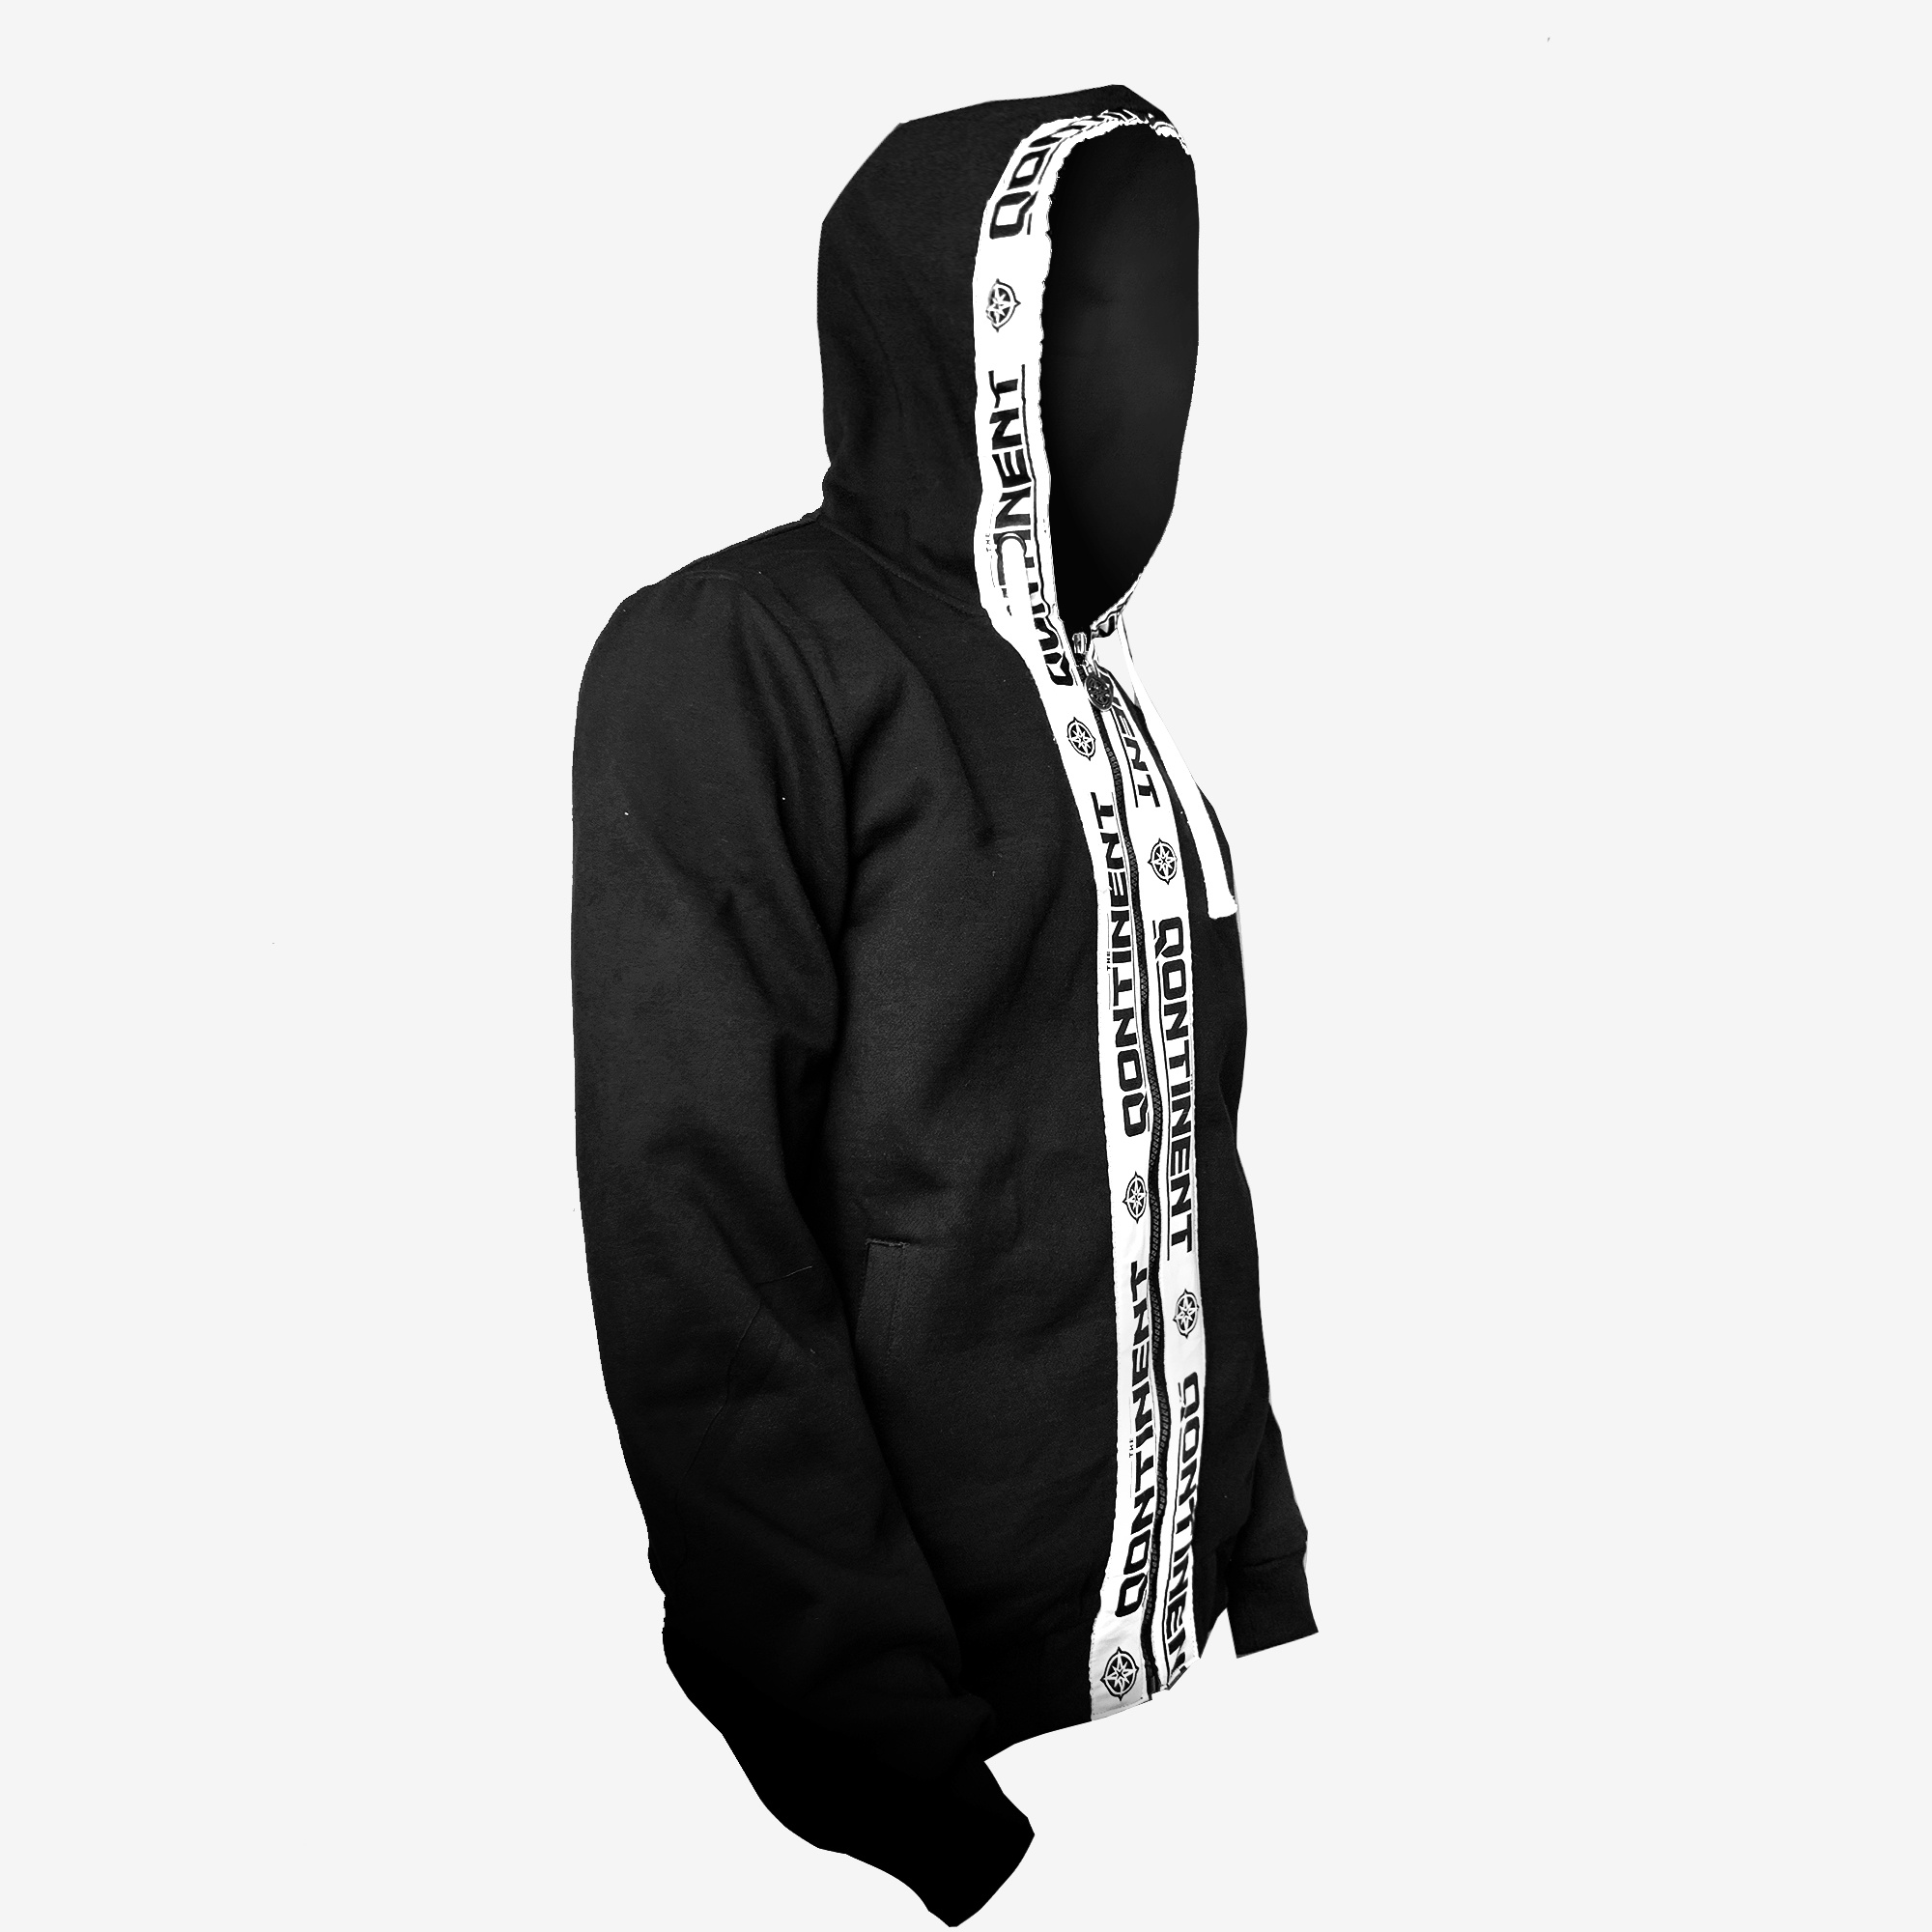 The Qontinent - 2019 Taped Zipped Hoody